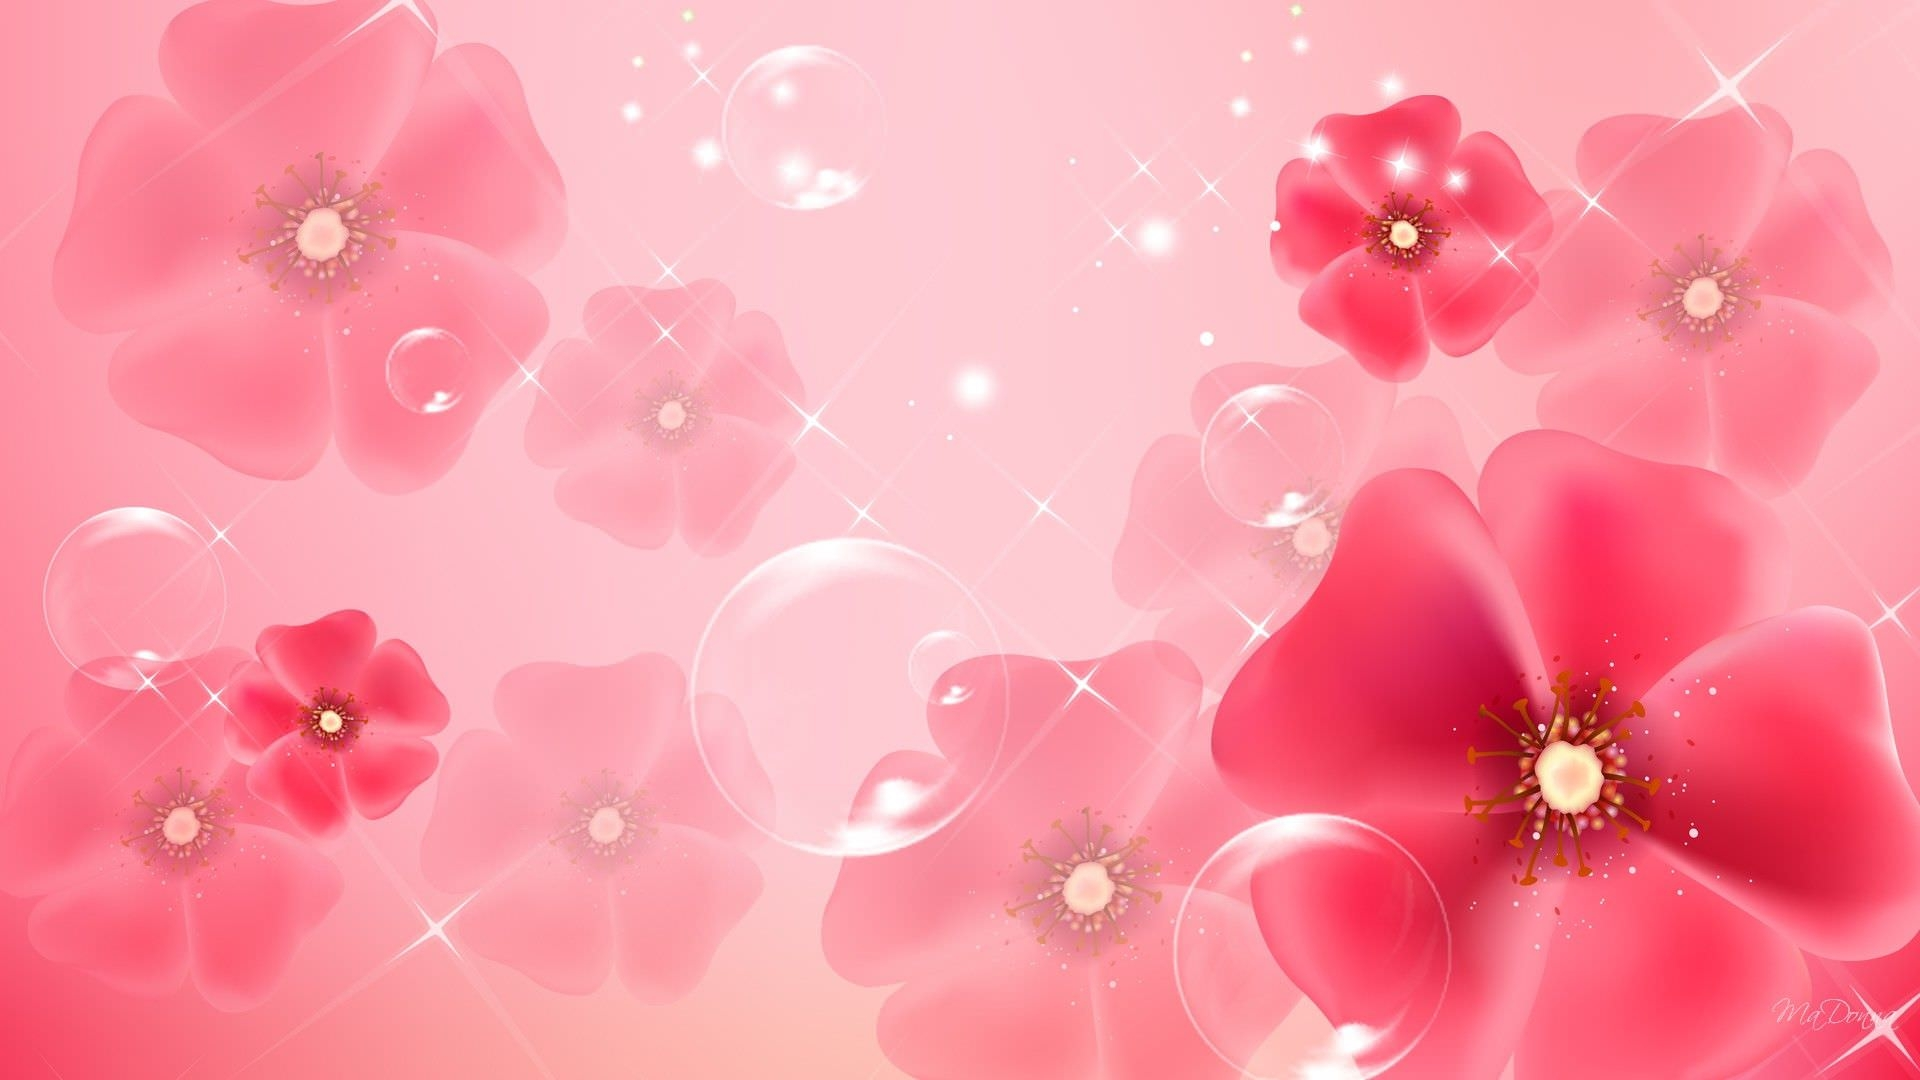 light pink flower wallpaper - photo #6